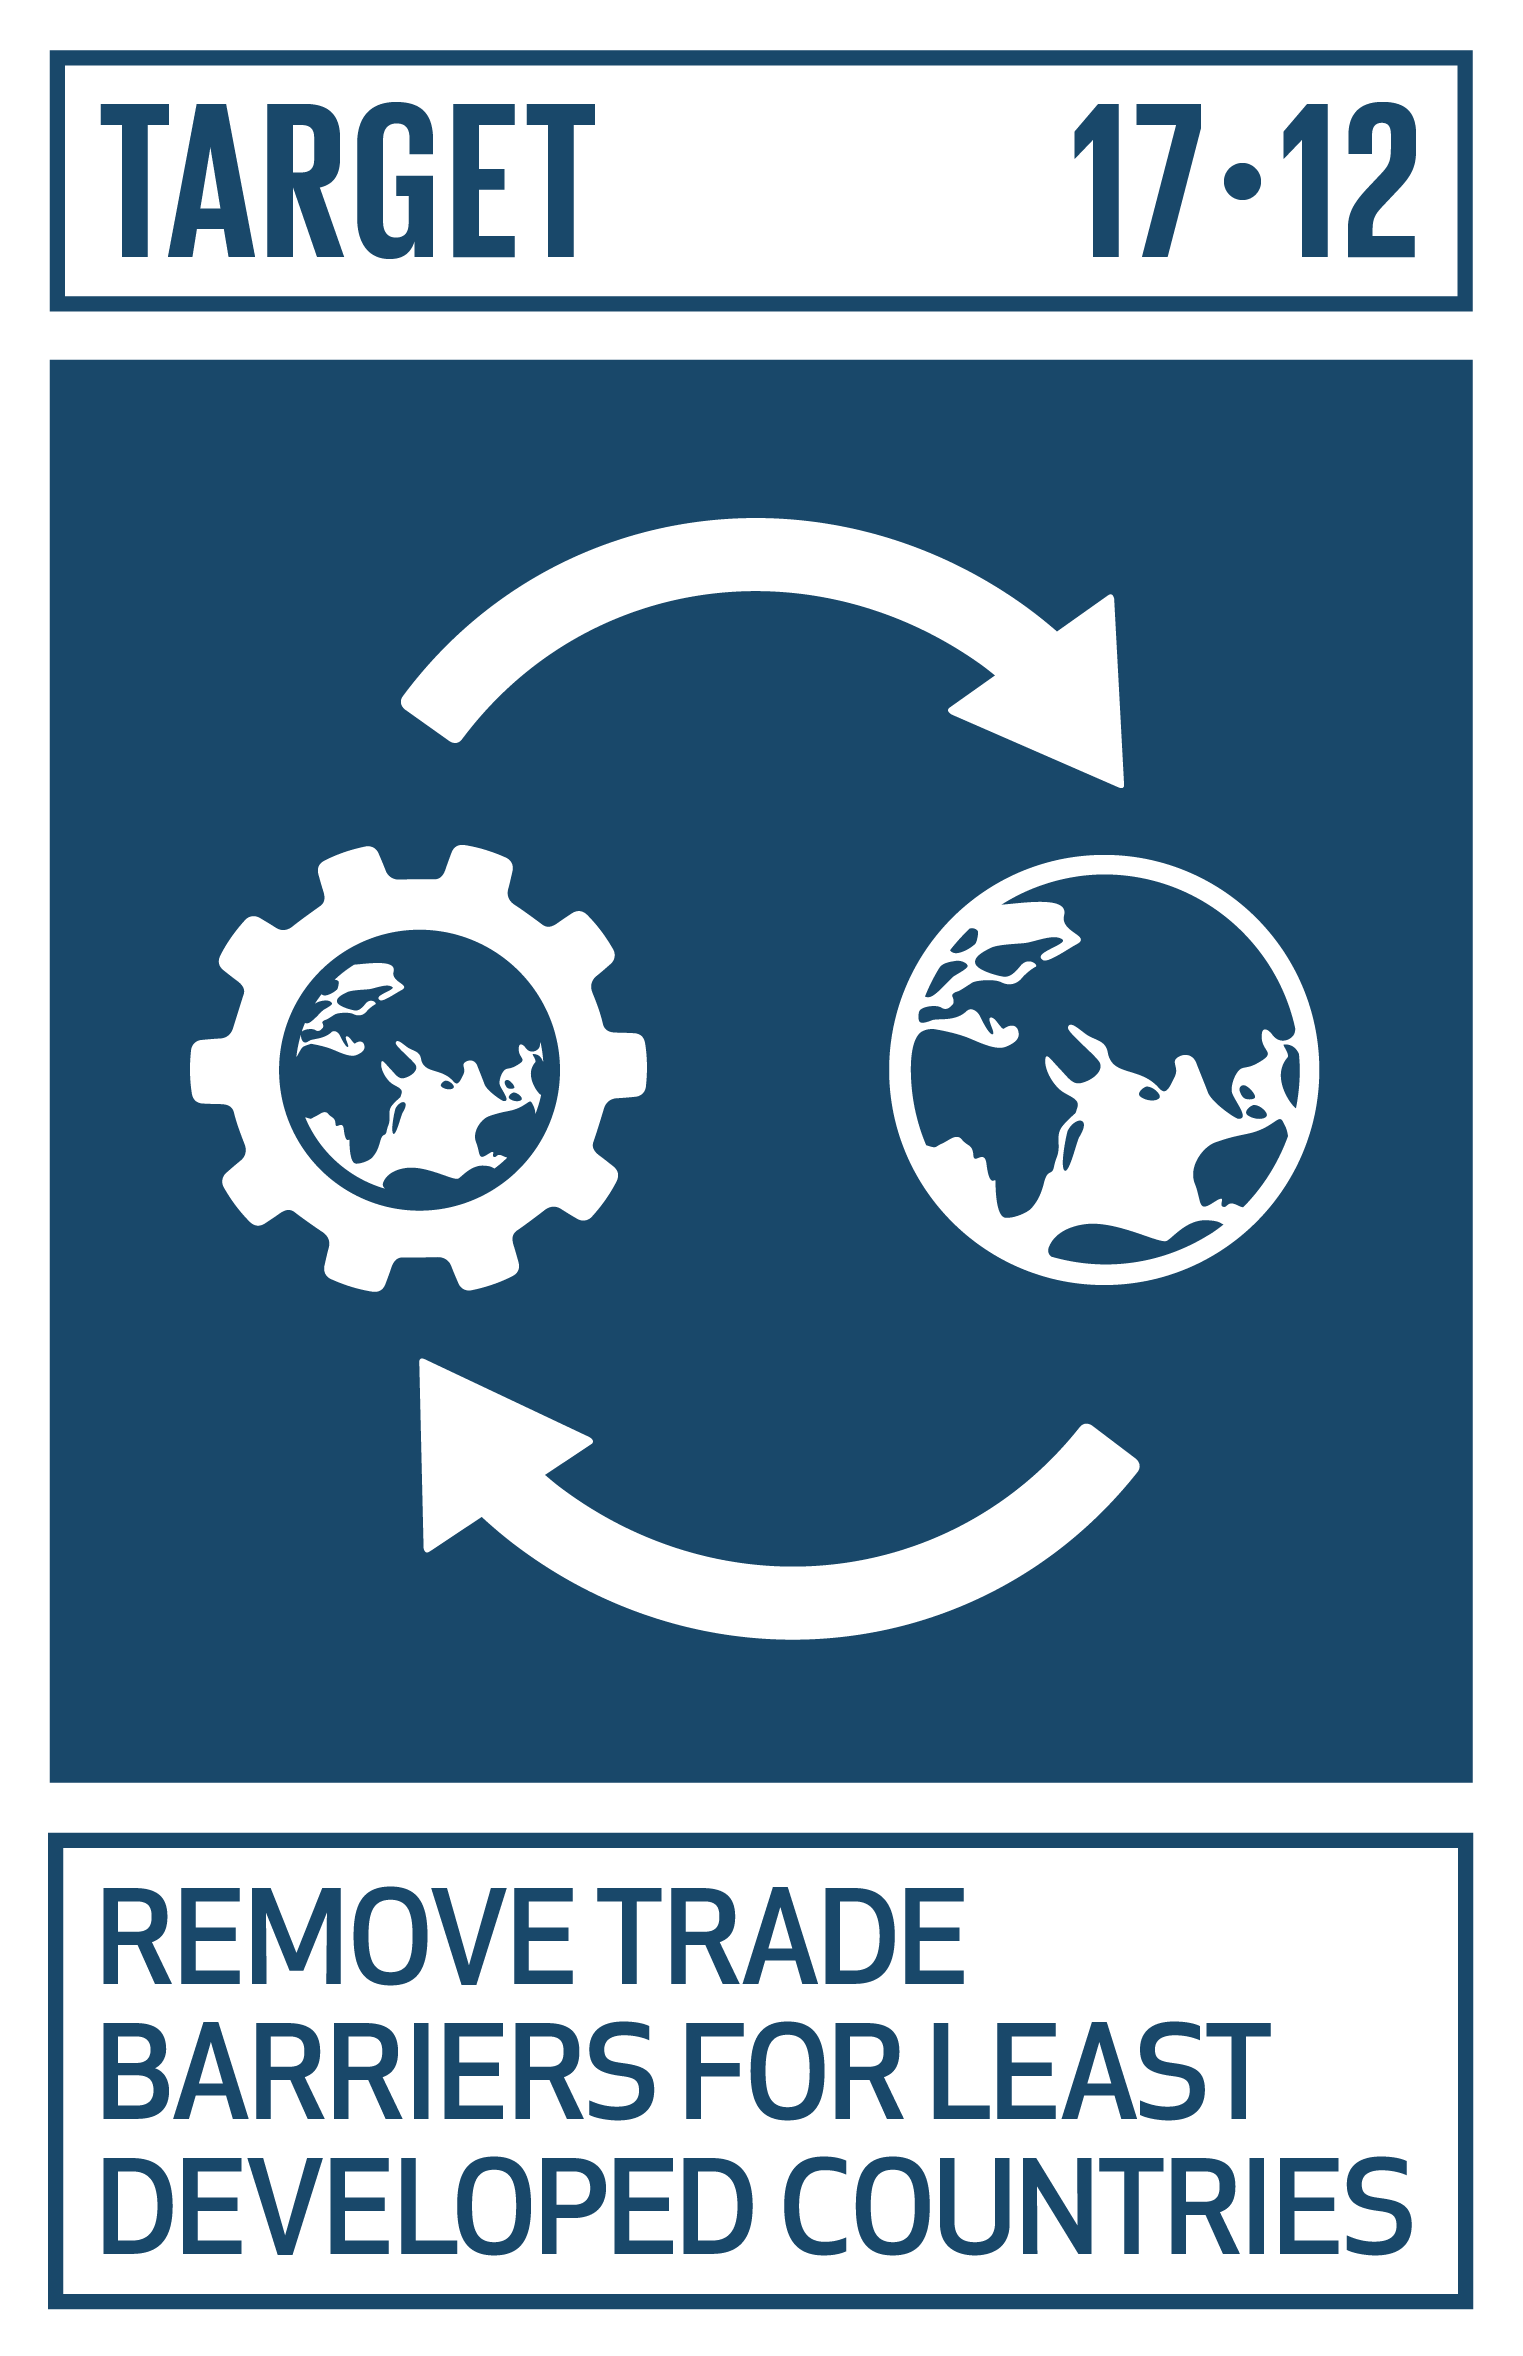 TRADE TARGET   Realize timely implementation of duty-free and quota-free market access on a lasting basis for all least developed countries, consistent with World Trade Organization decisions, including by ensuring that preferential rules of origin applicable to imports from least developed countries are transparent and simple, and contribute to facilitating market access   INDICATOR    17.12.1  Average tariffs faced by developing countries, least developed countries and small island developing States